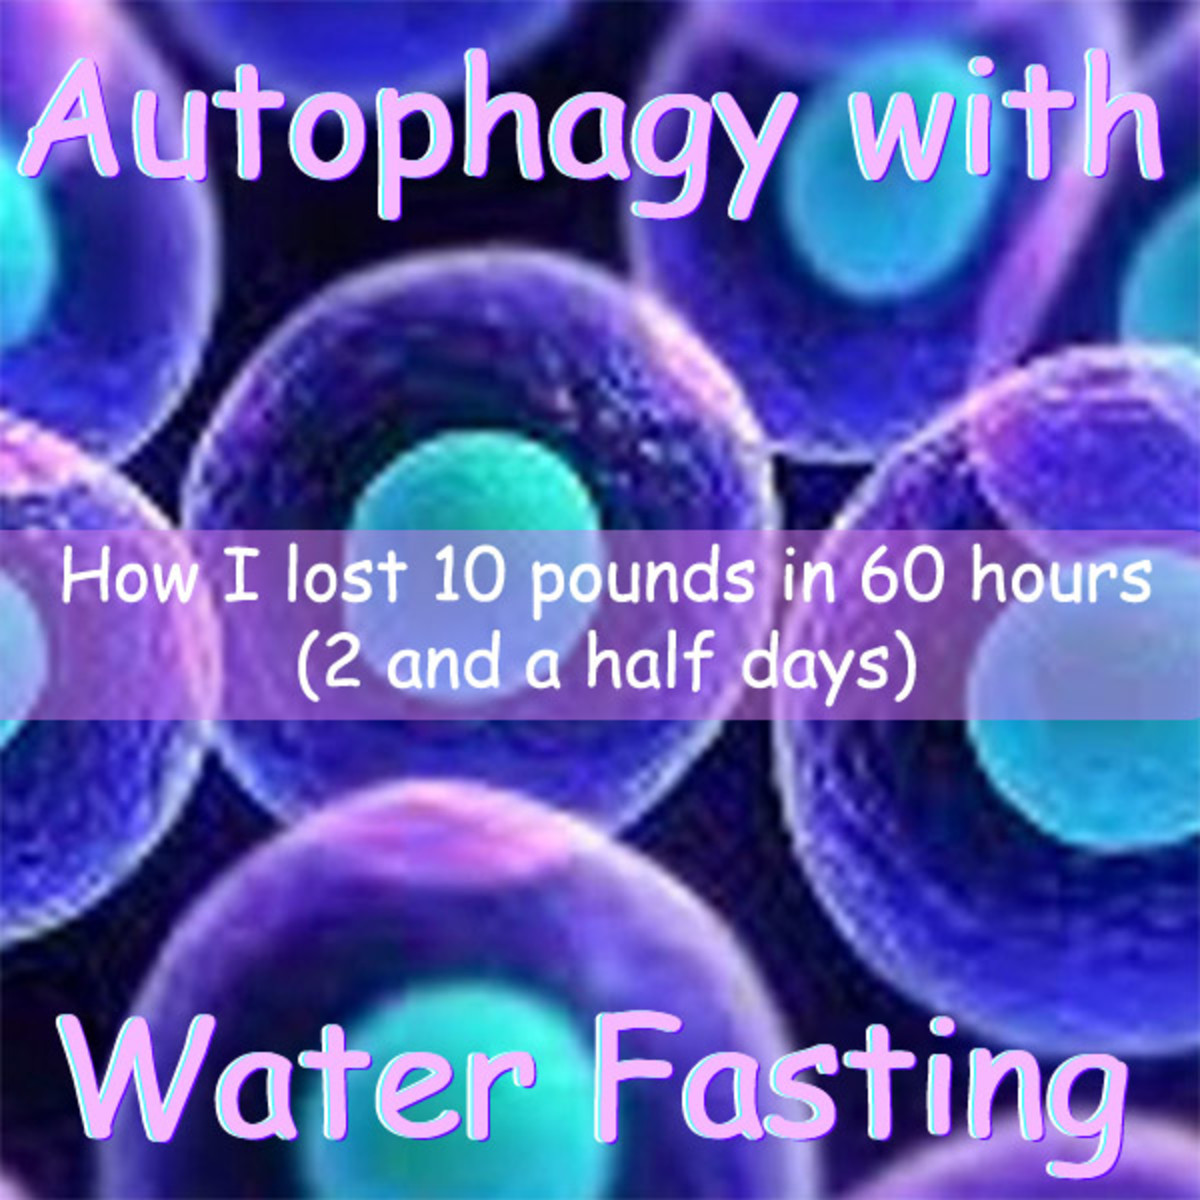 How I Lost 10 Pounds in 60 Hours With Autophagy and Water Fasting